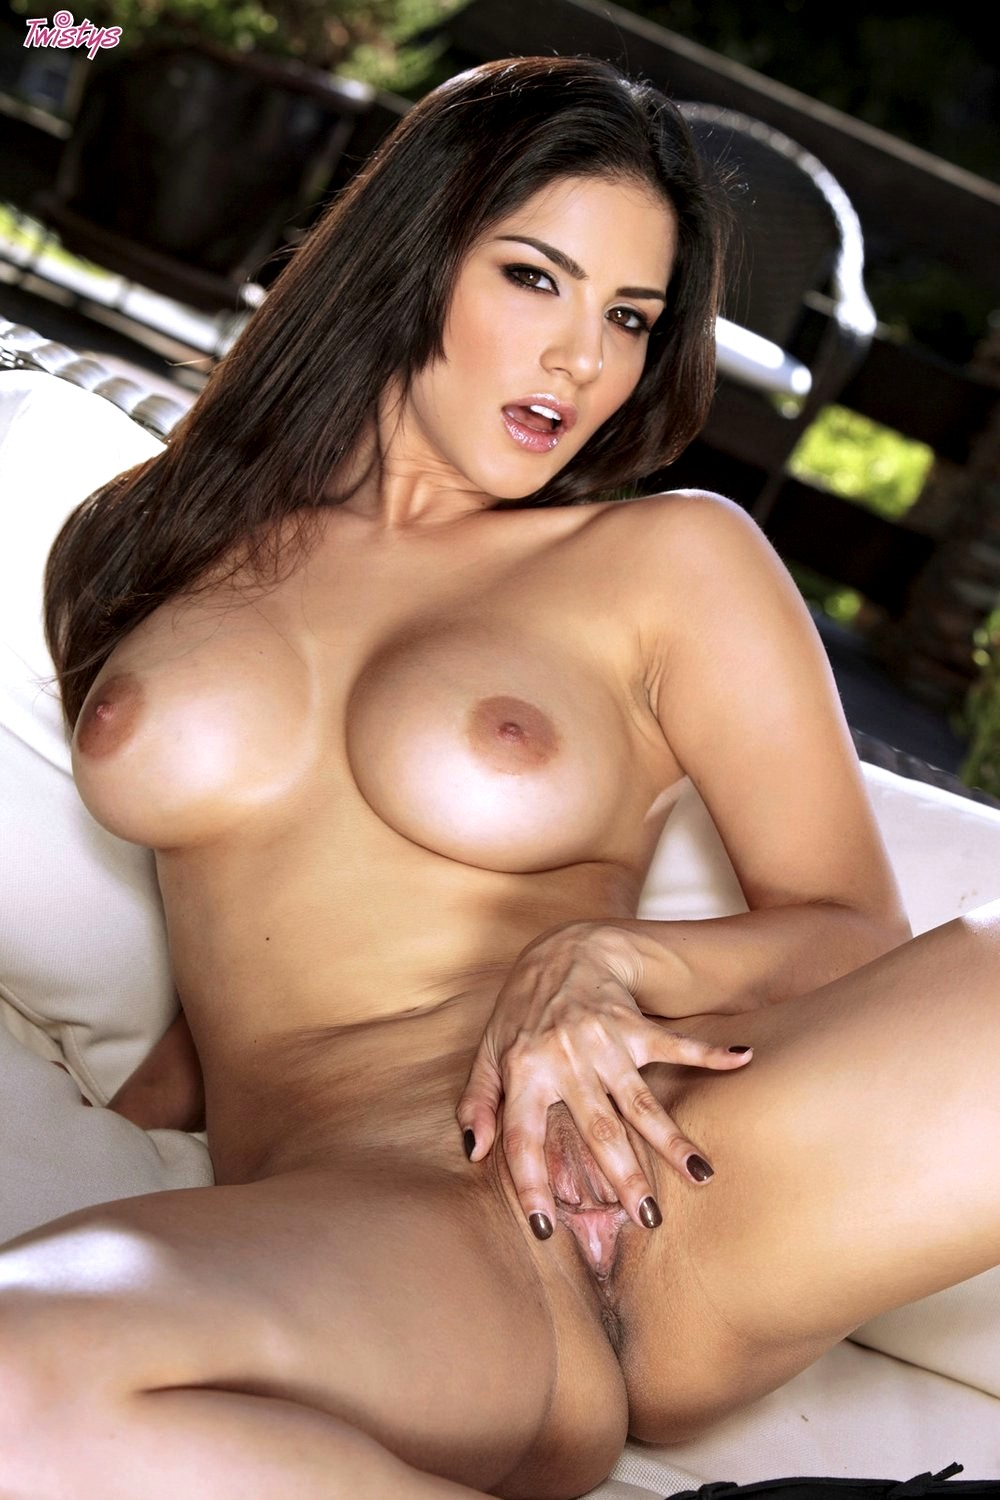 Sunny leone new nude images-4576